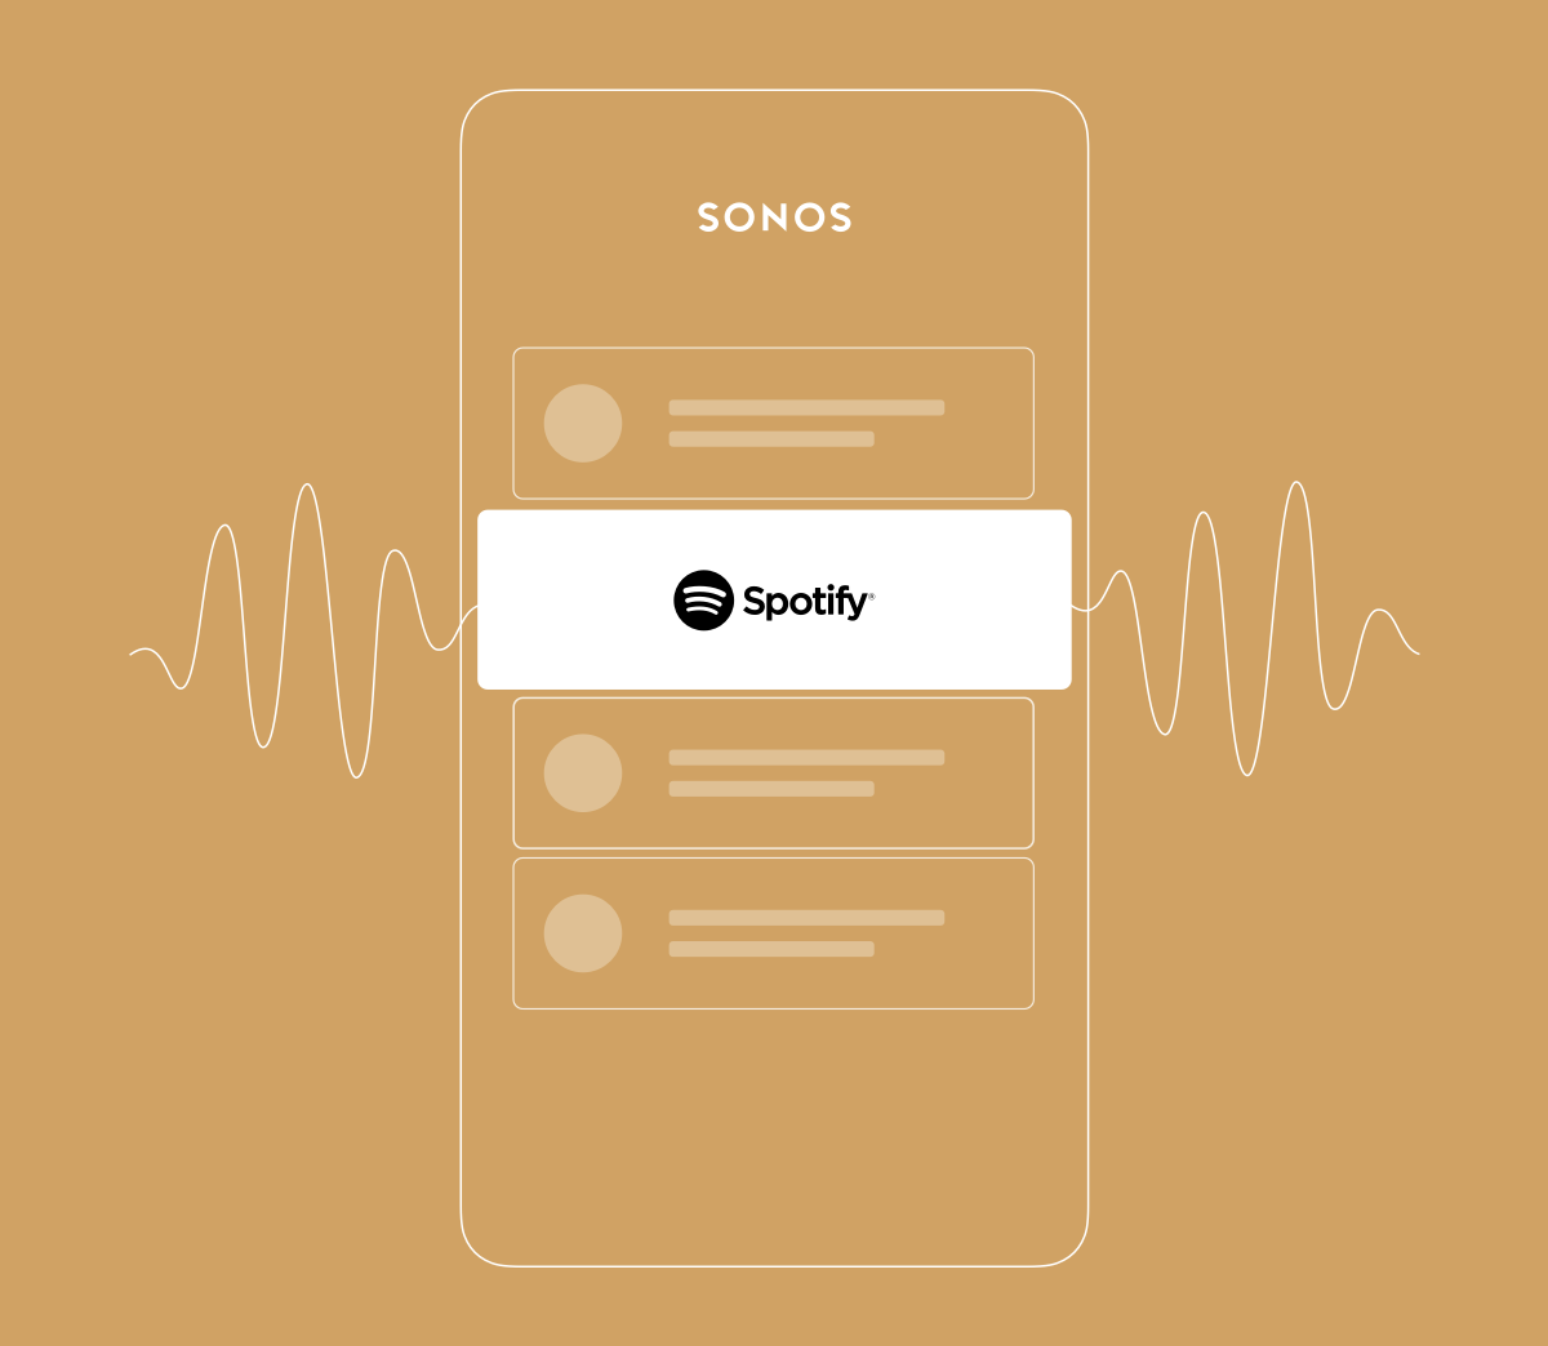 are there any free music apps for sonos